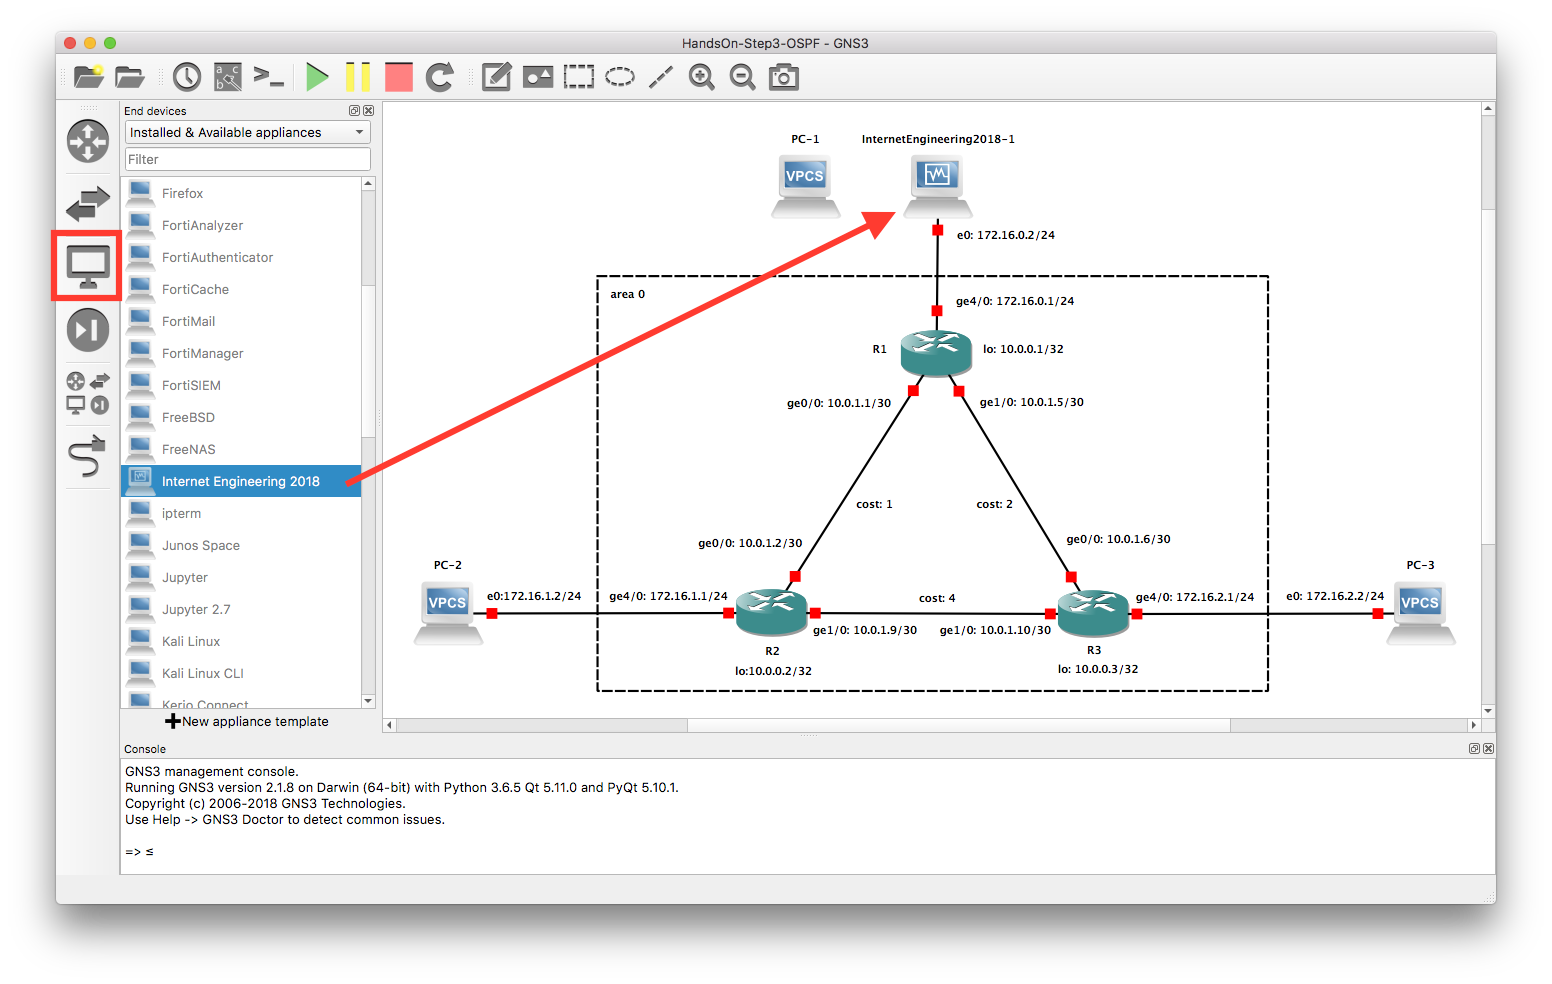 Monitoring with SNMP | Internet Engineering (4007)